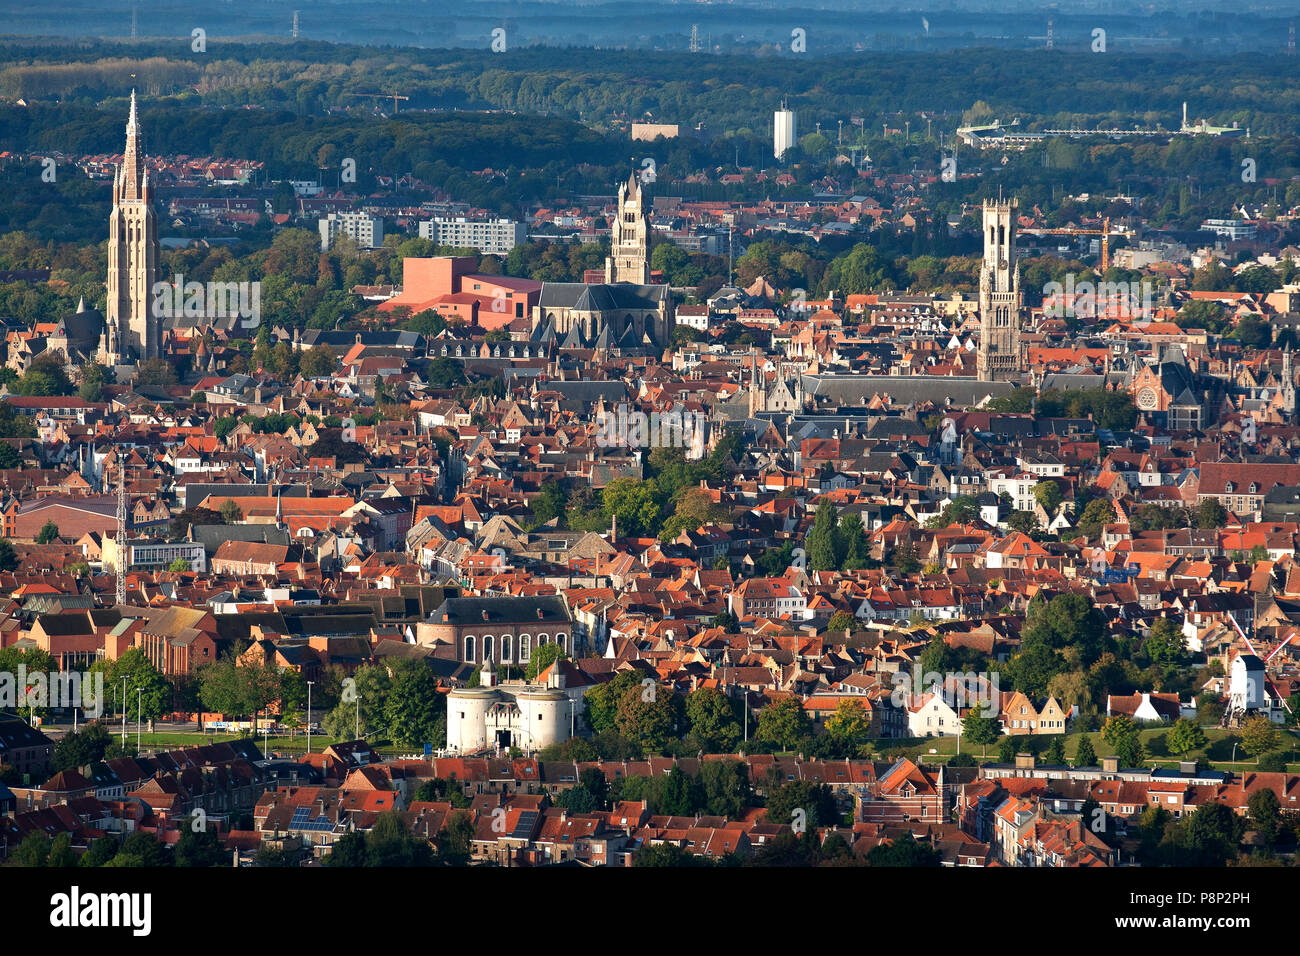 Aerial of the city of Bruges, Belgium - Stock Image